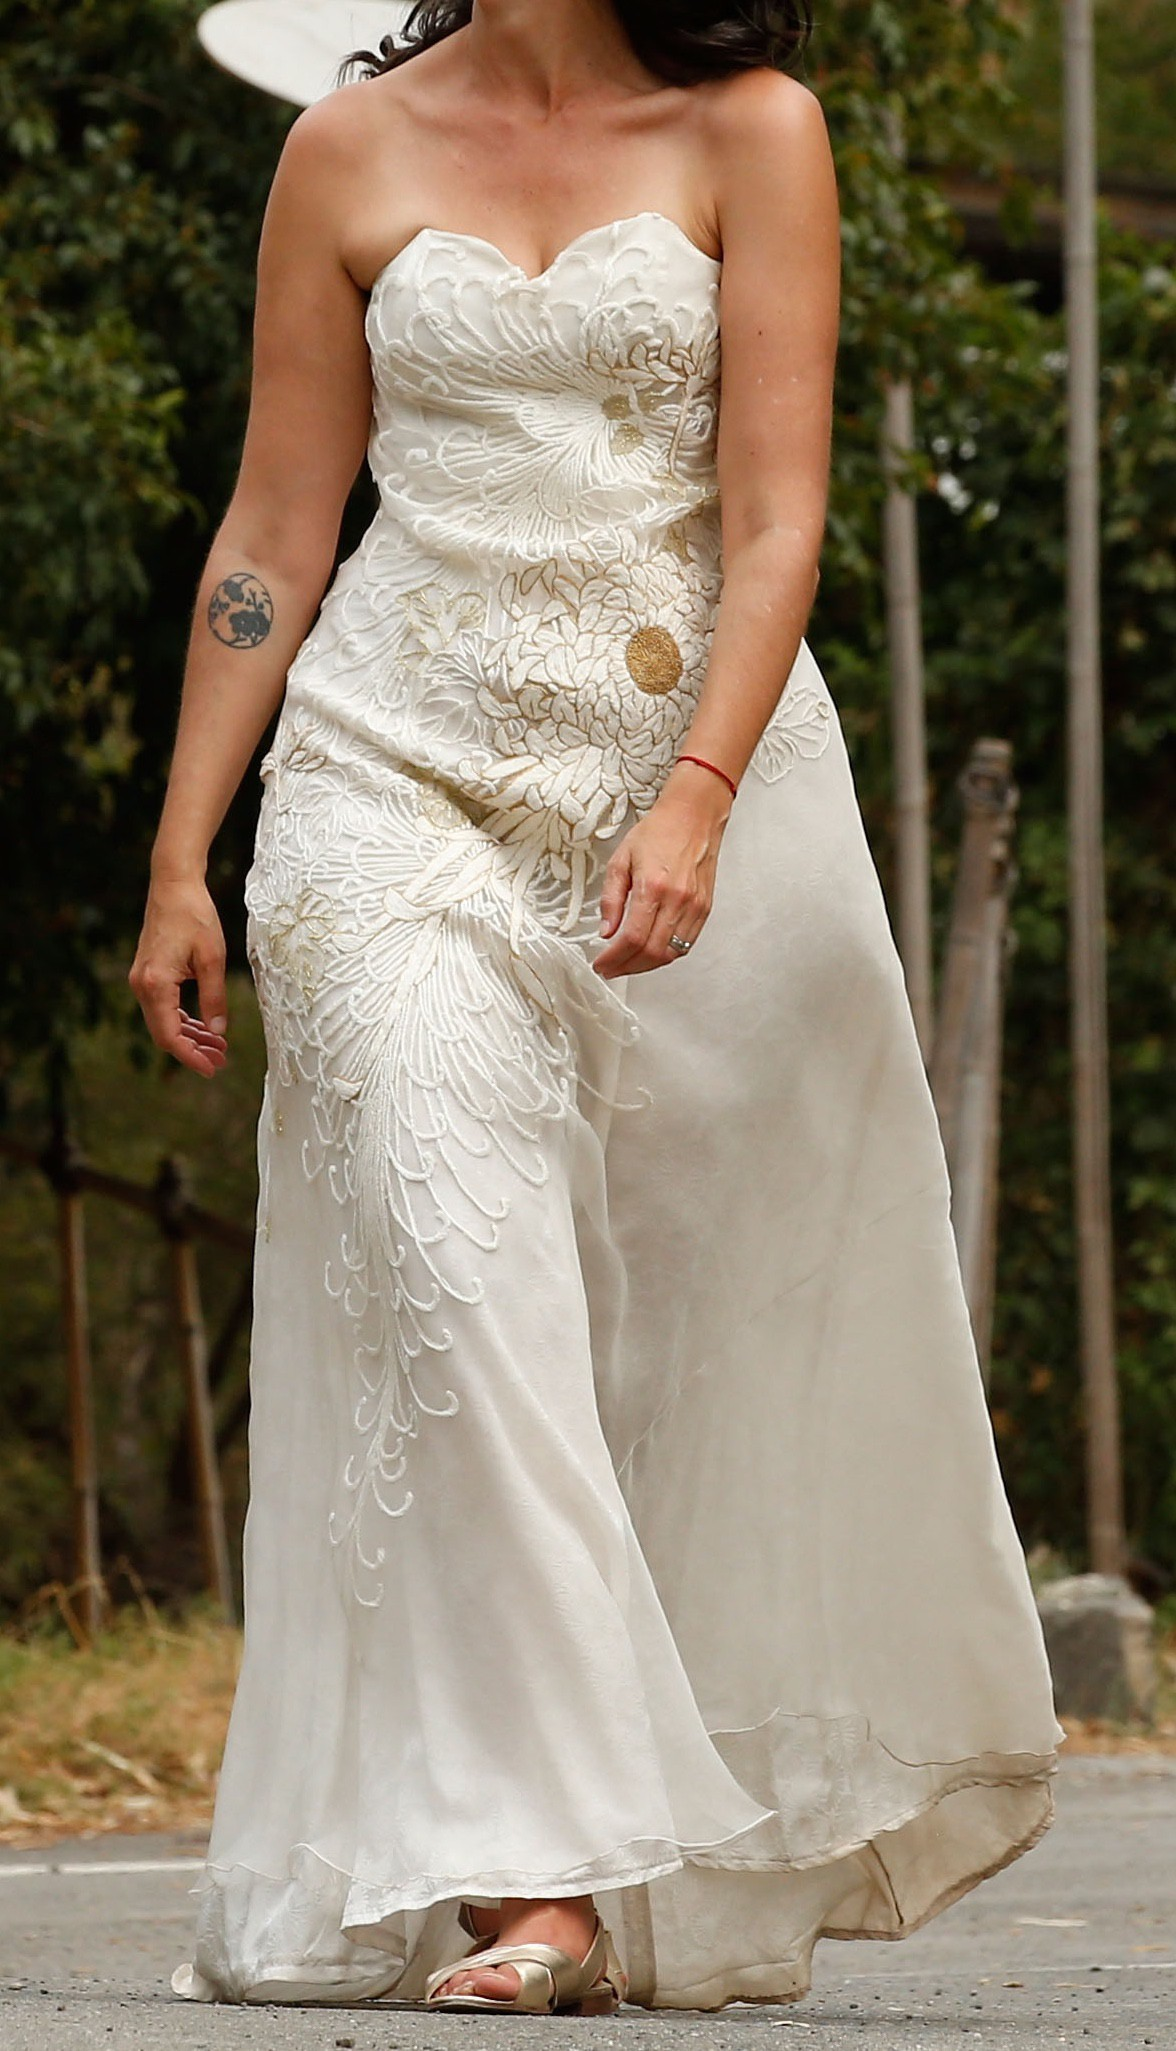 Akira Isogawa 109/S151439LE Hand Embroidered Strapless Gown Wedding Dress  On Sale - 80% Off